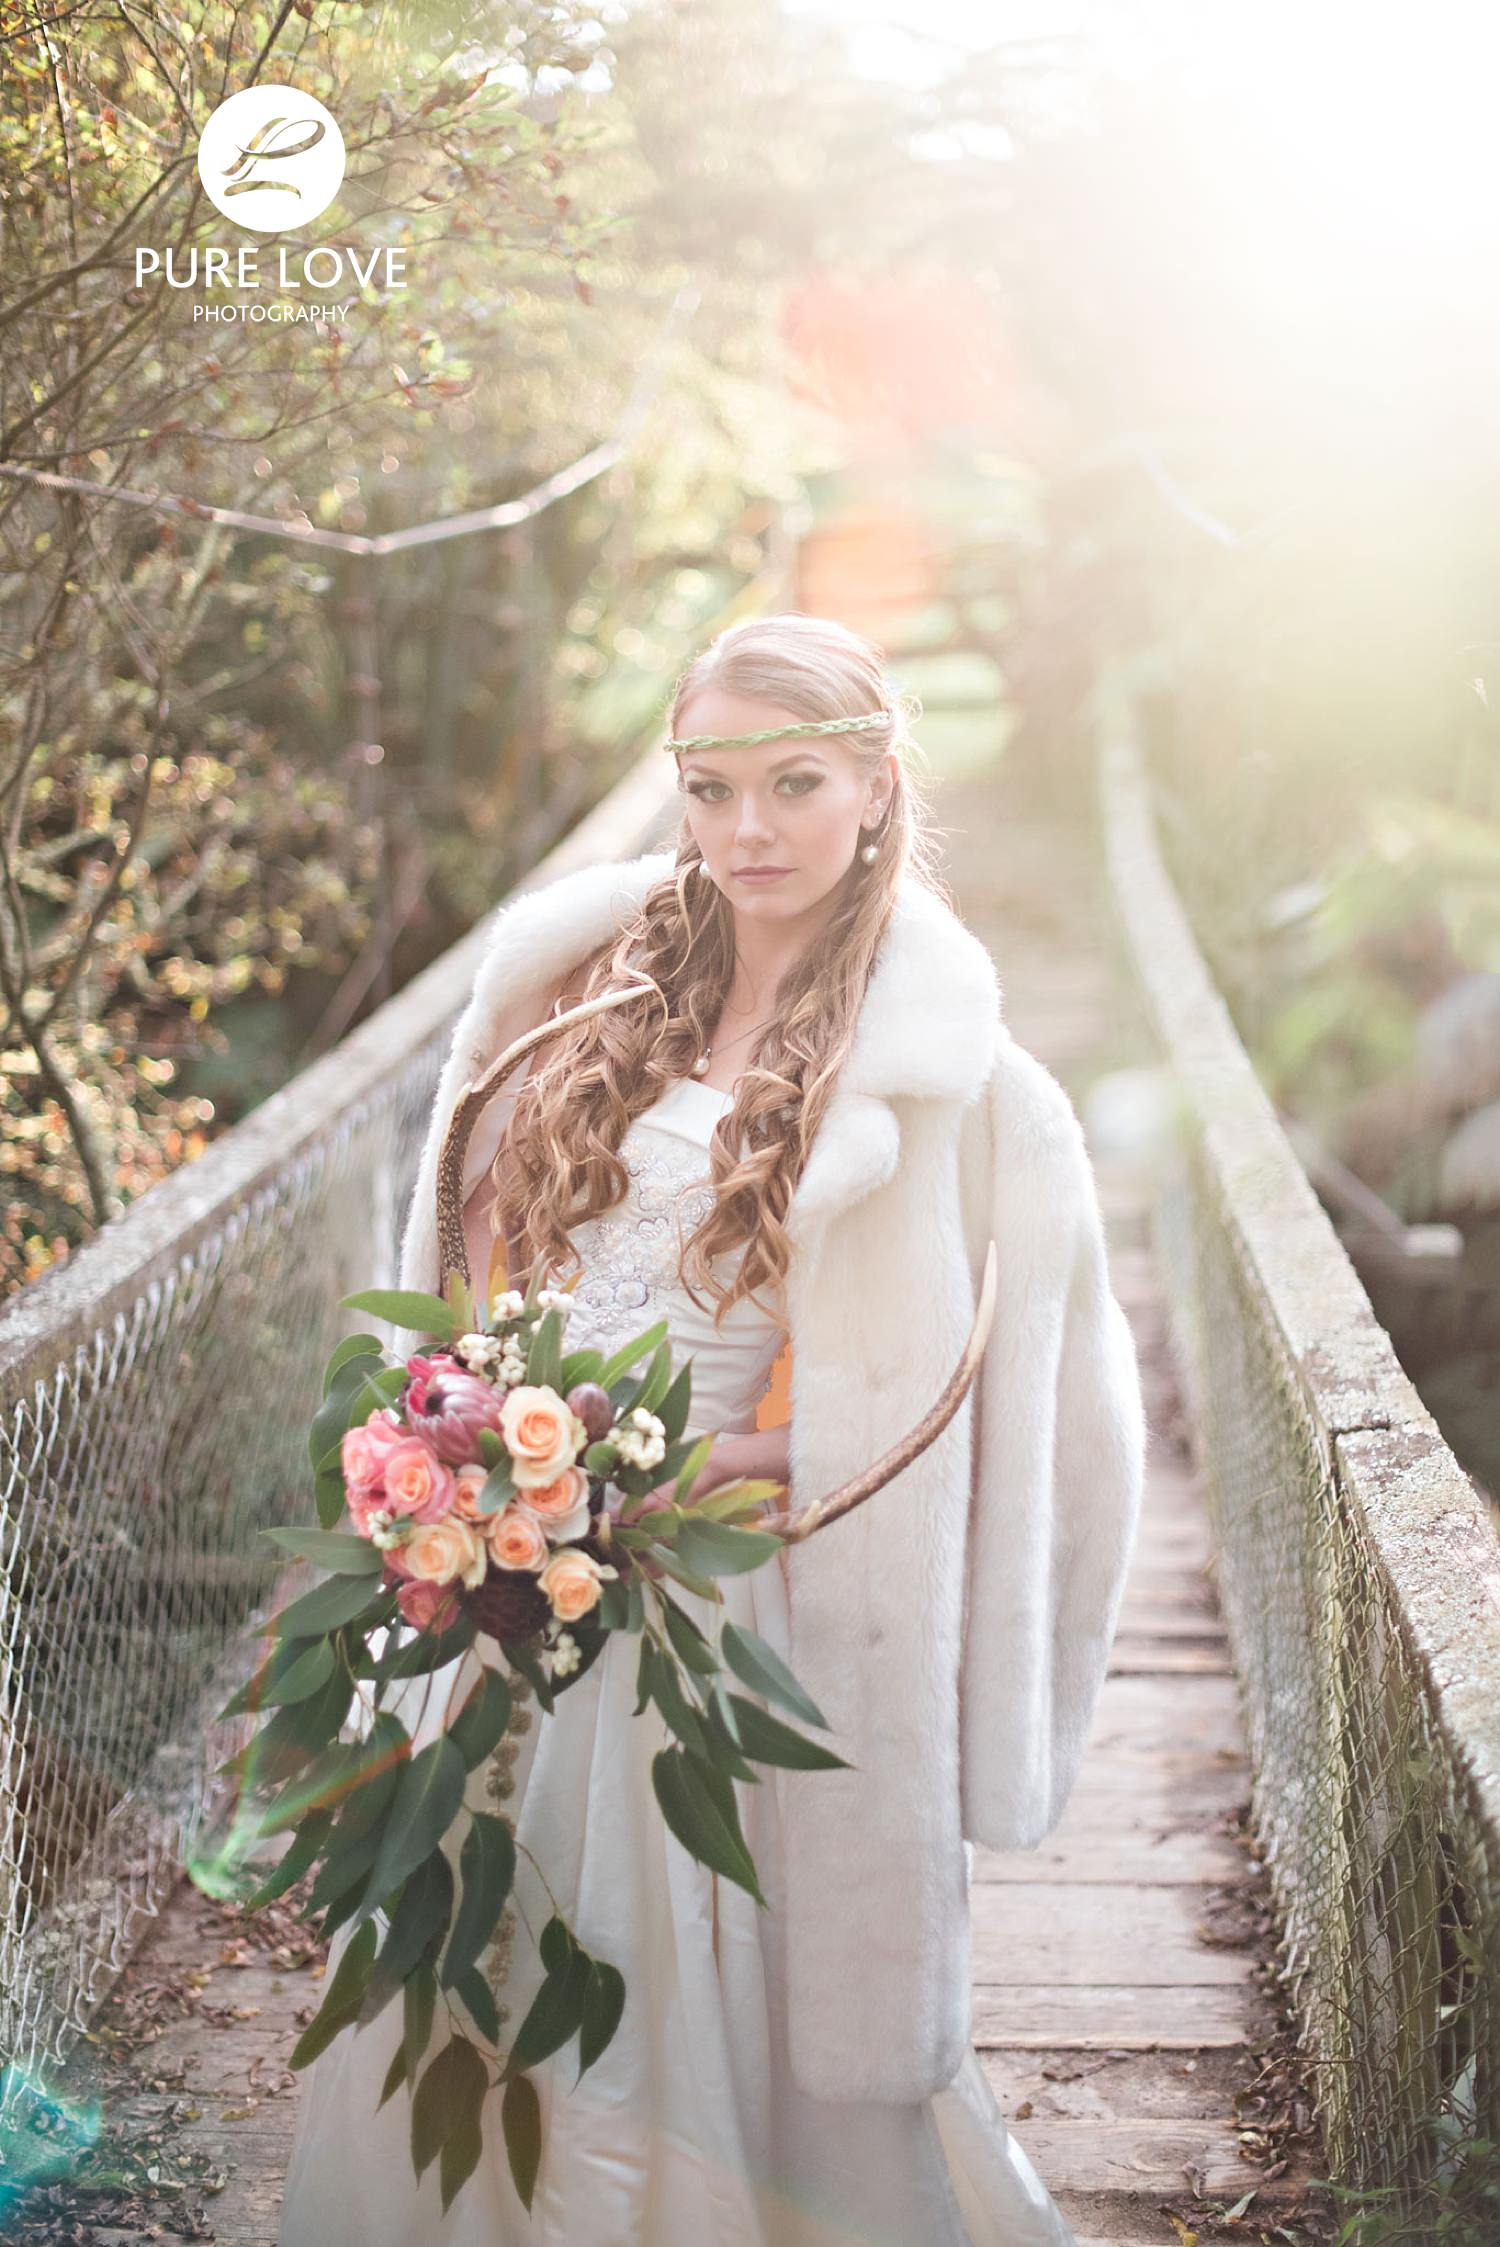 Wedding Photo on the bride with golden light